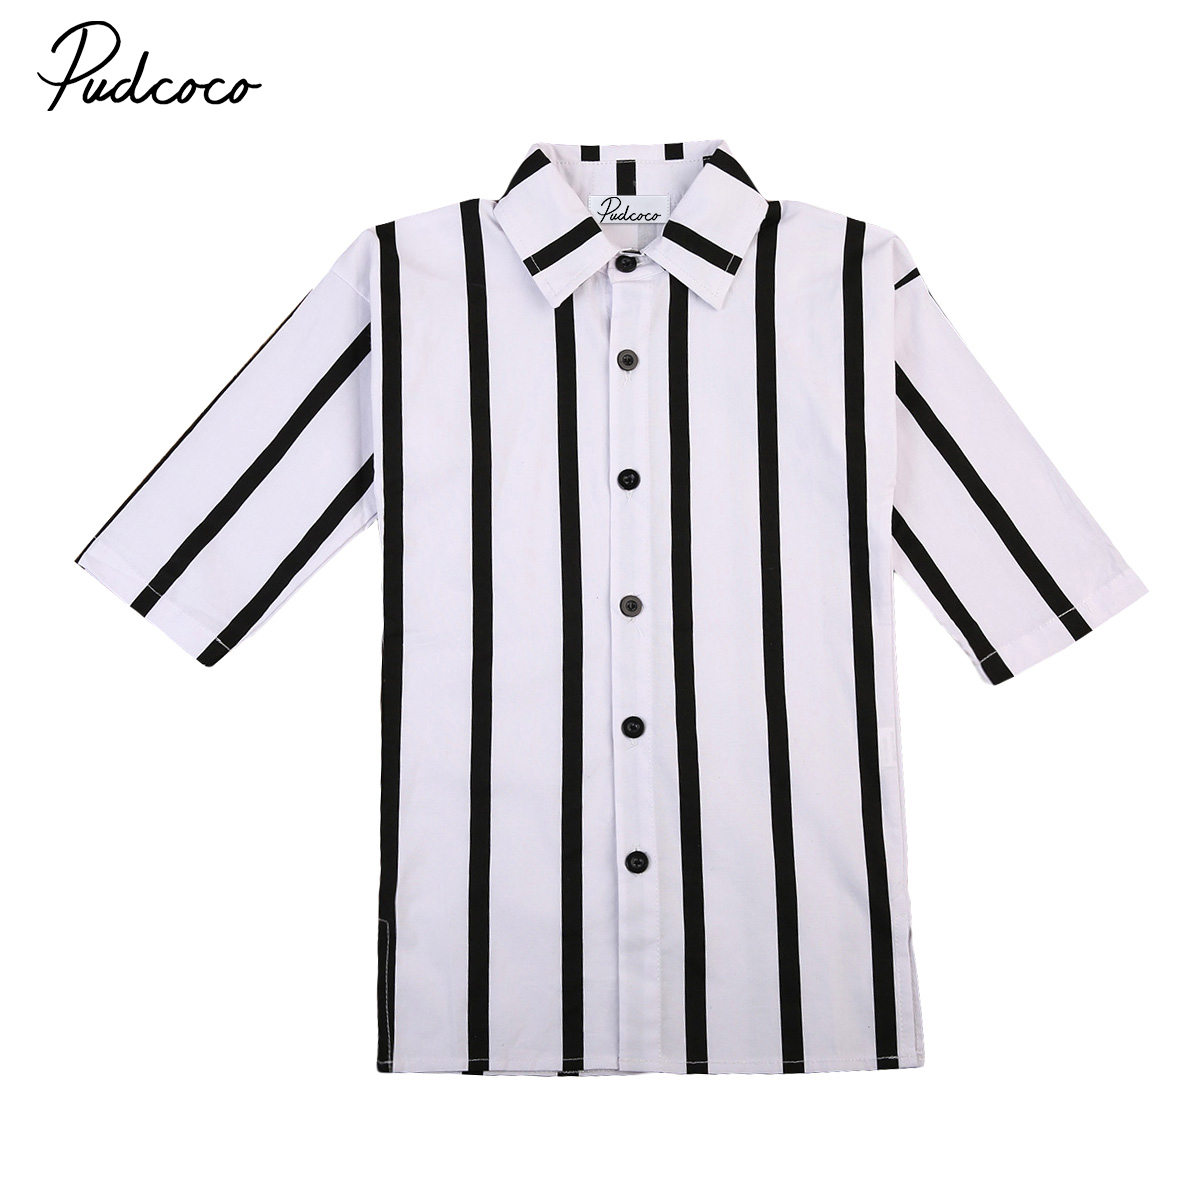 Fashion Kids Toddler Girls Brief Black White Stripes Dress Vestidos Fall Casual Long Sleeve Shirt Clothes Tops 1-6Y